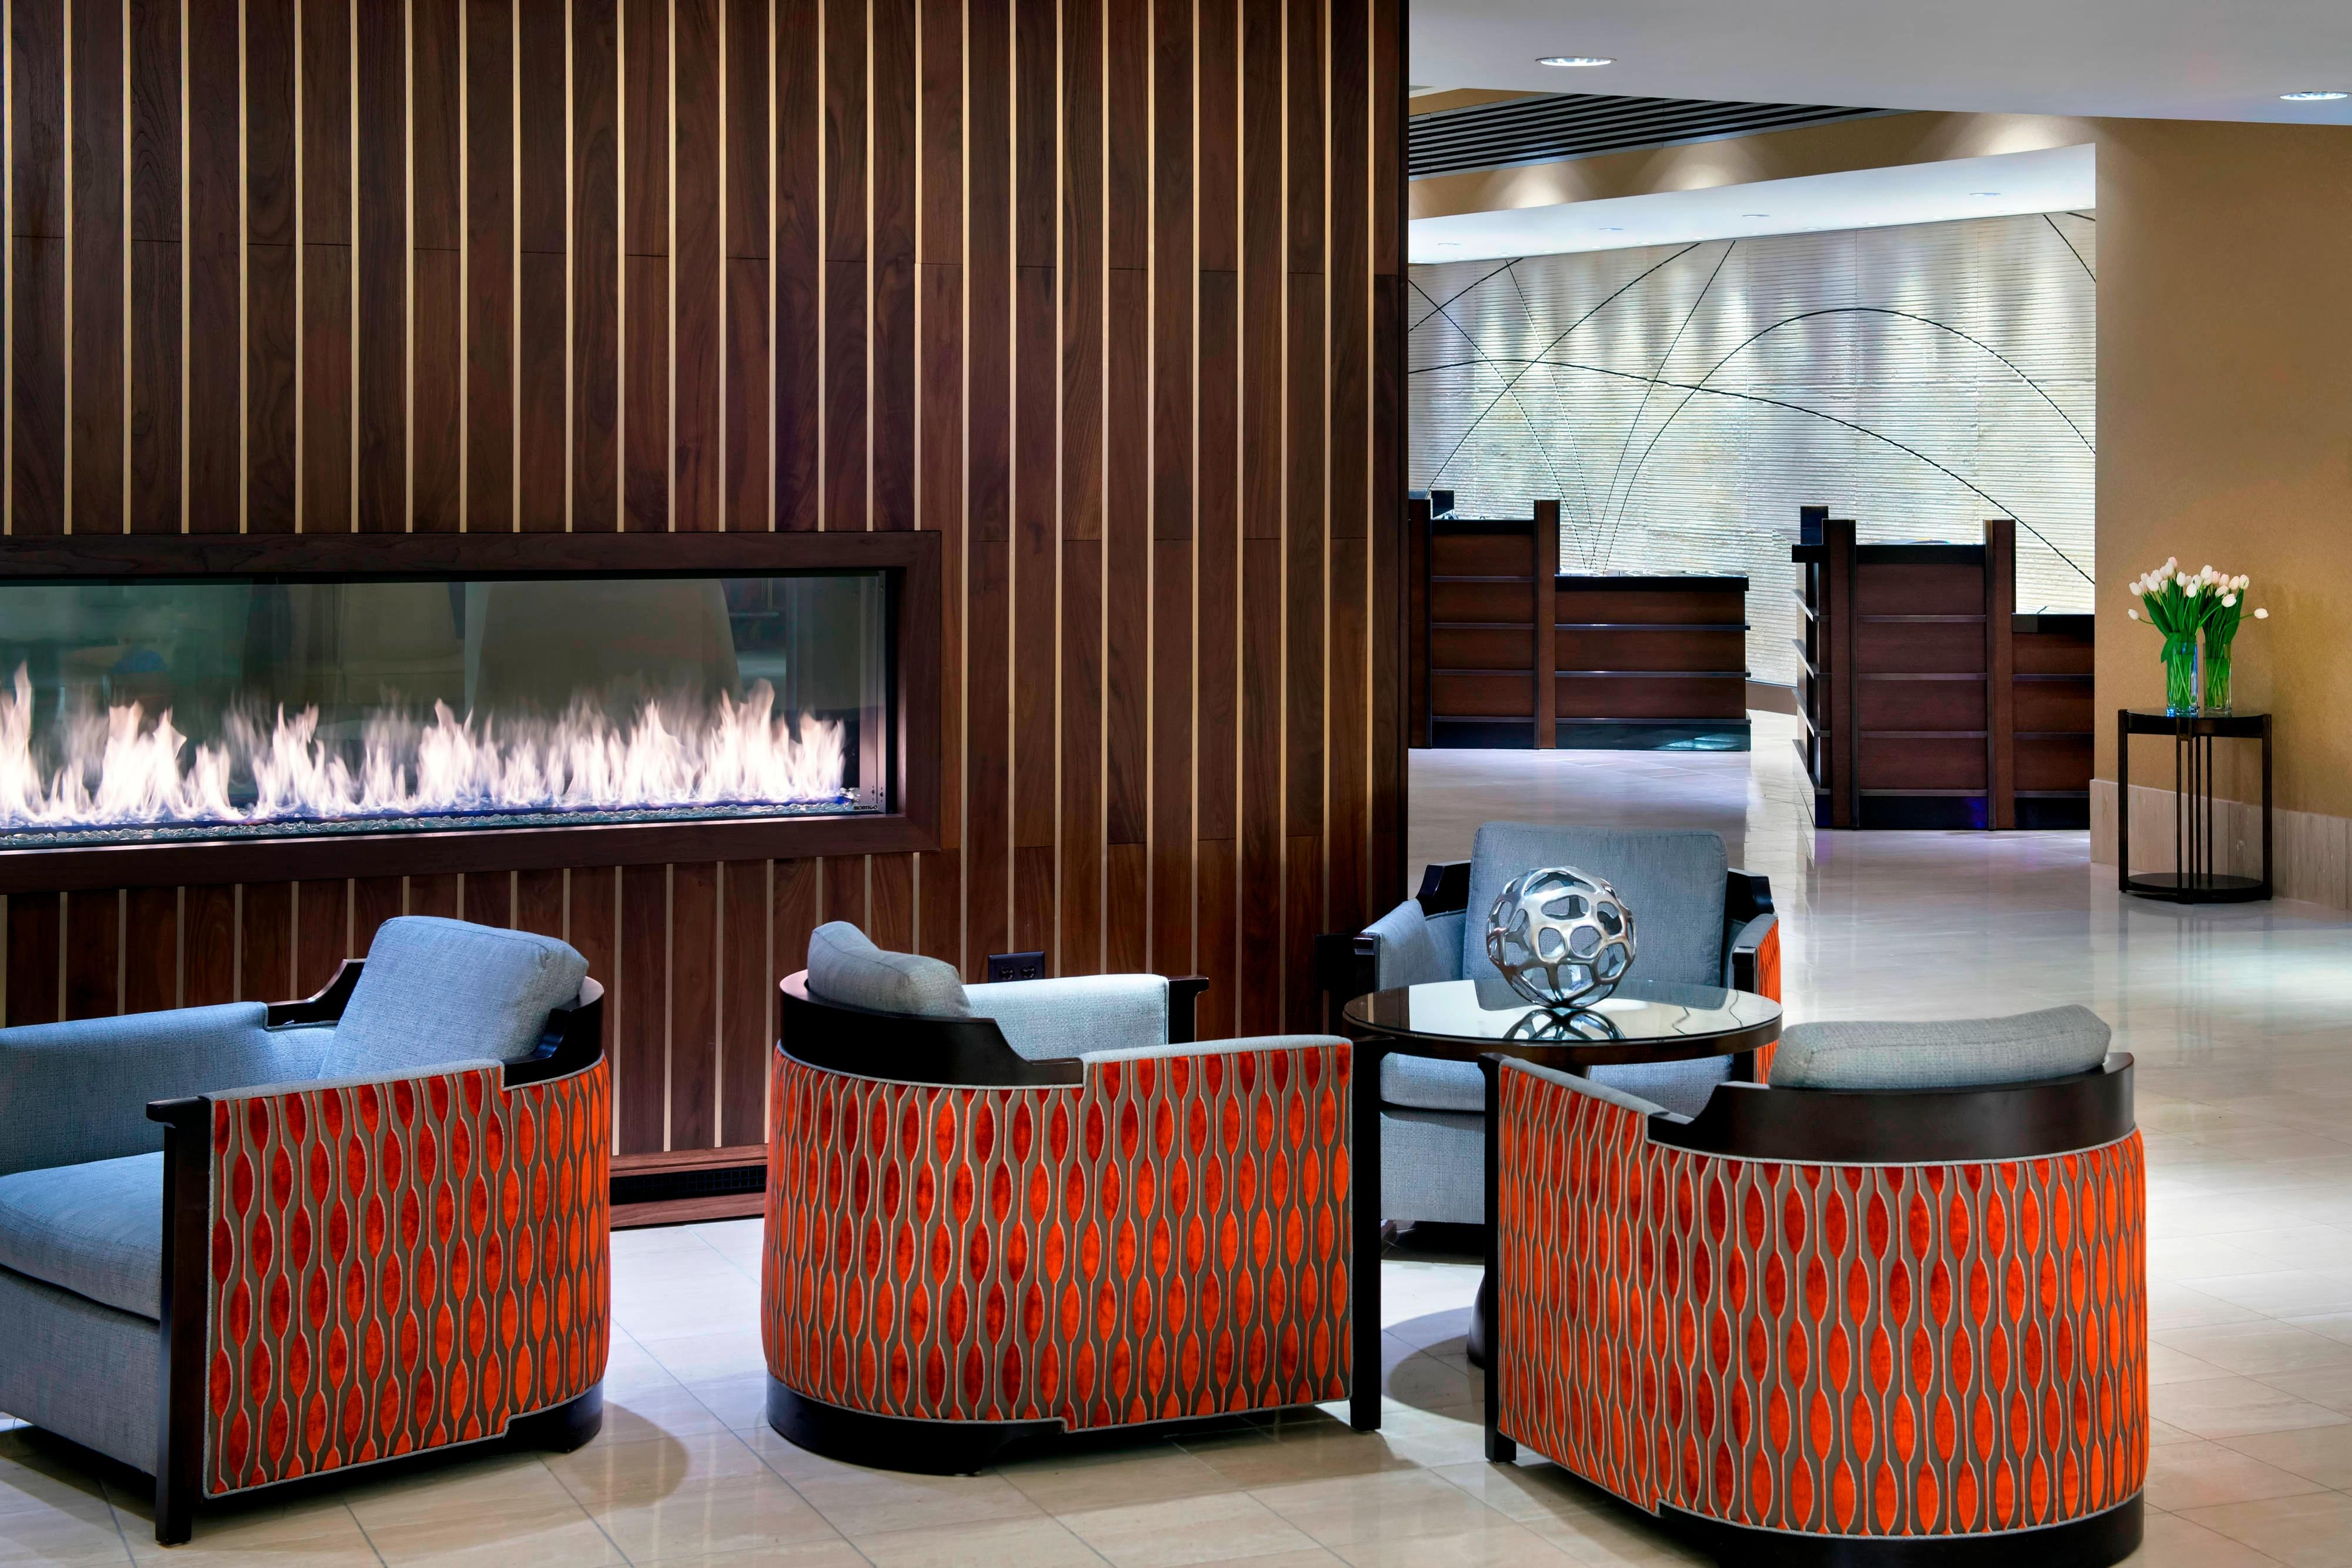 EWR hotel lobby seating area